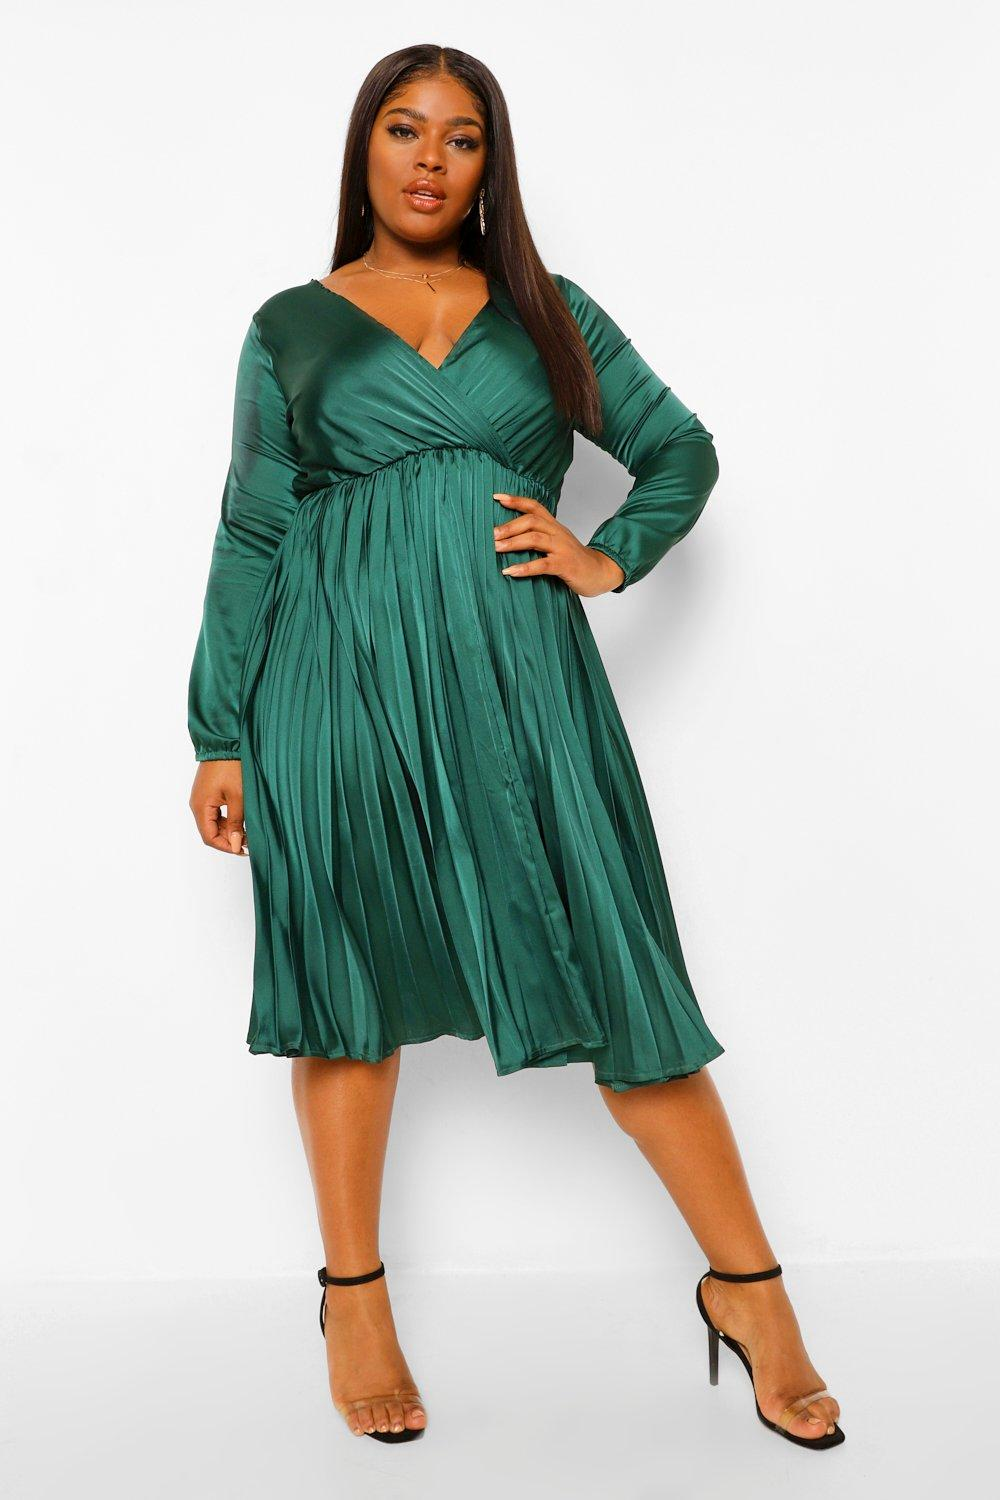 70s Prom, Formal, Evening, Party Dresses Womens Plus Satin Wrap Pleated Midi Dress - Green - 24 $45.00 AT vintagedancer.com